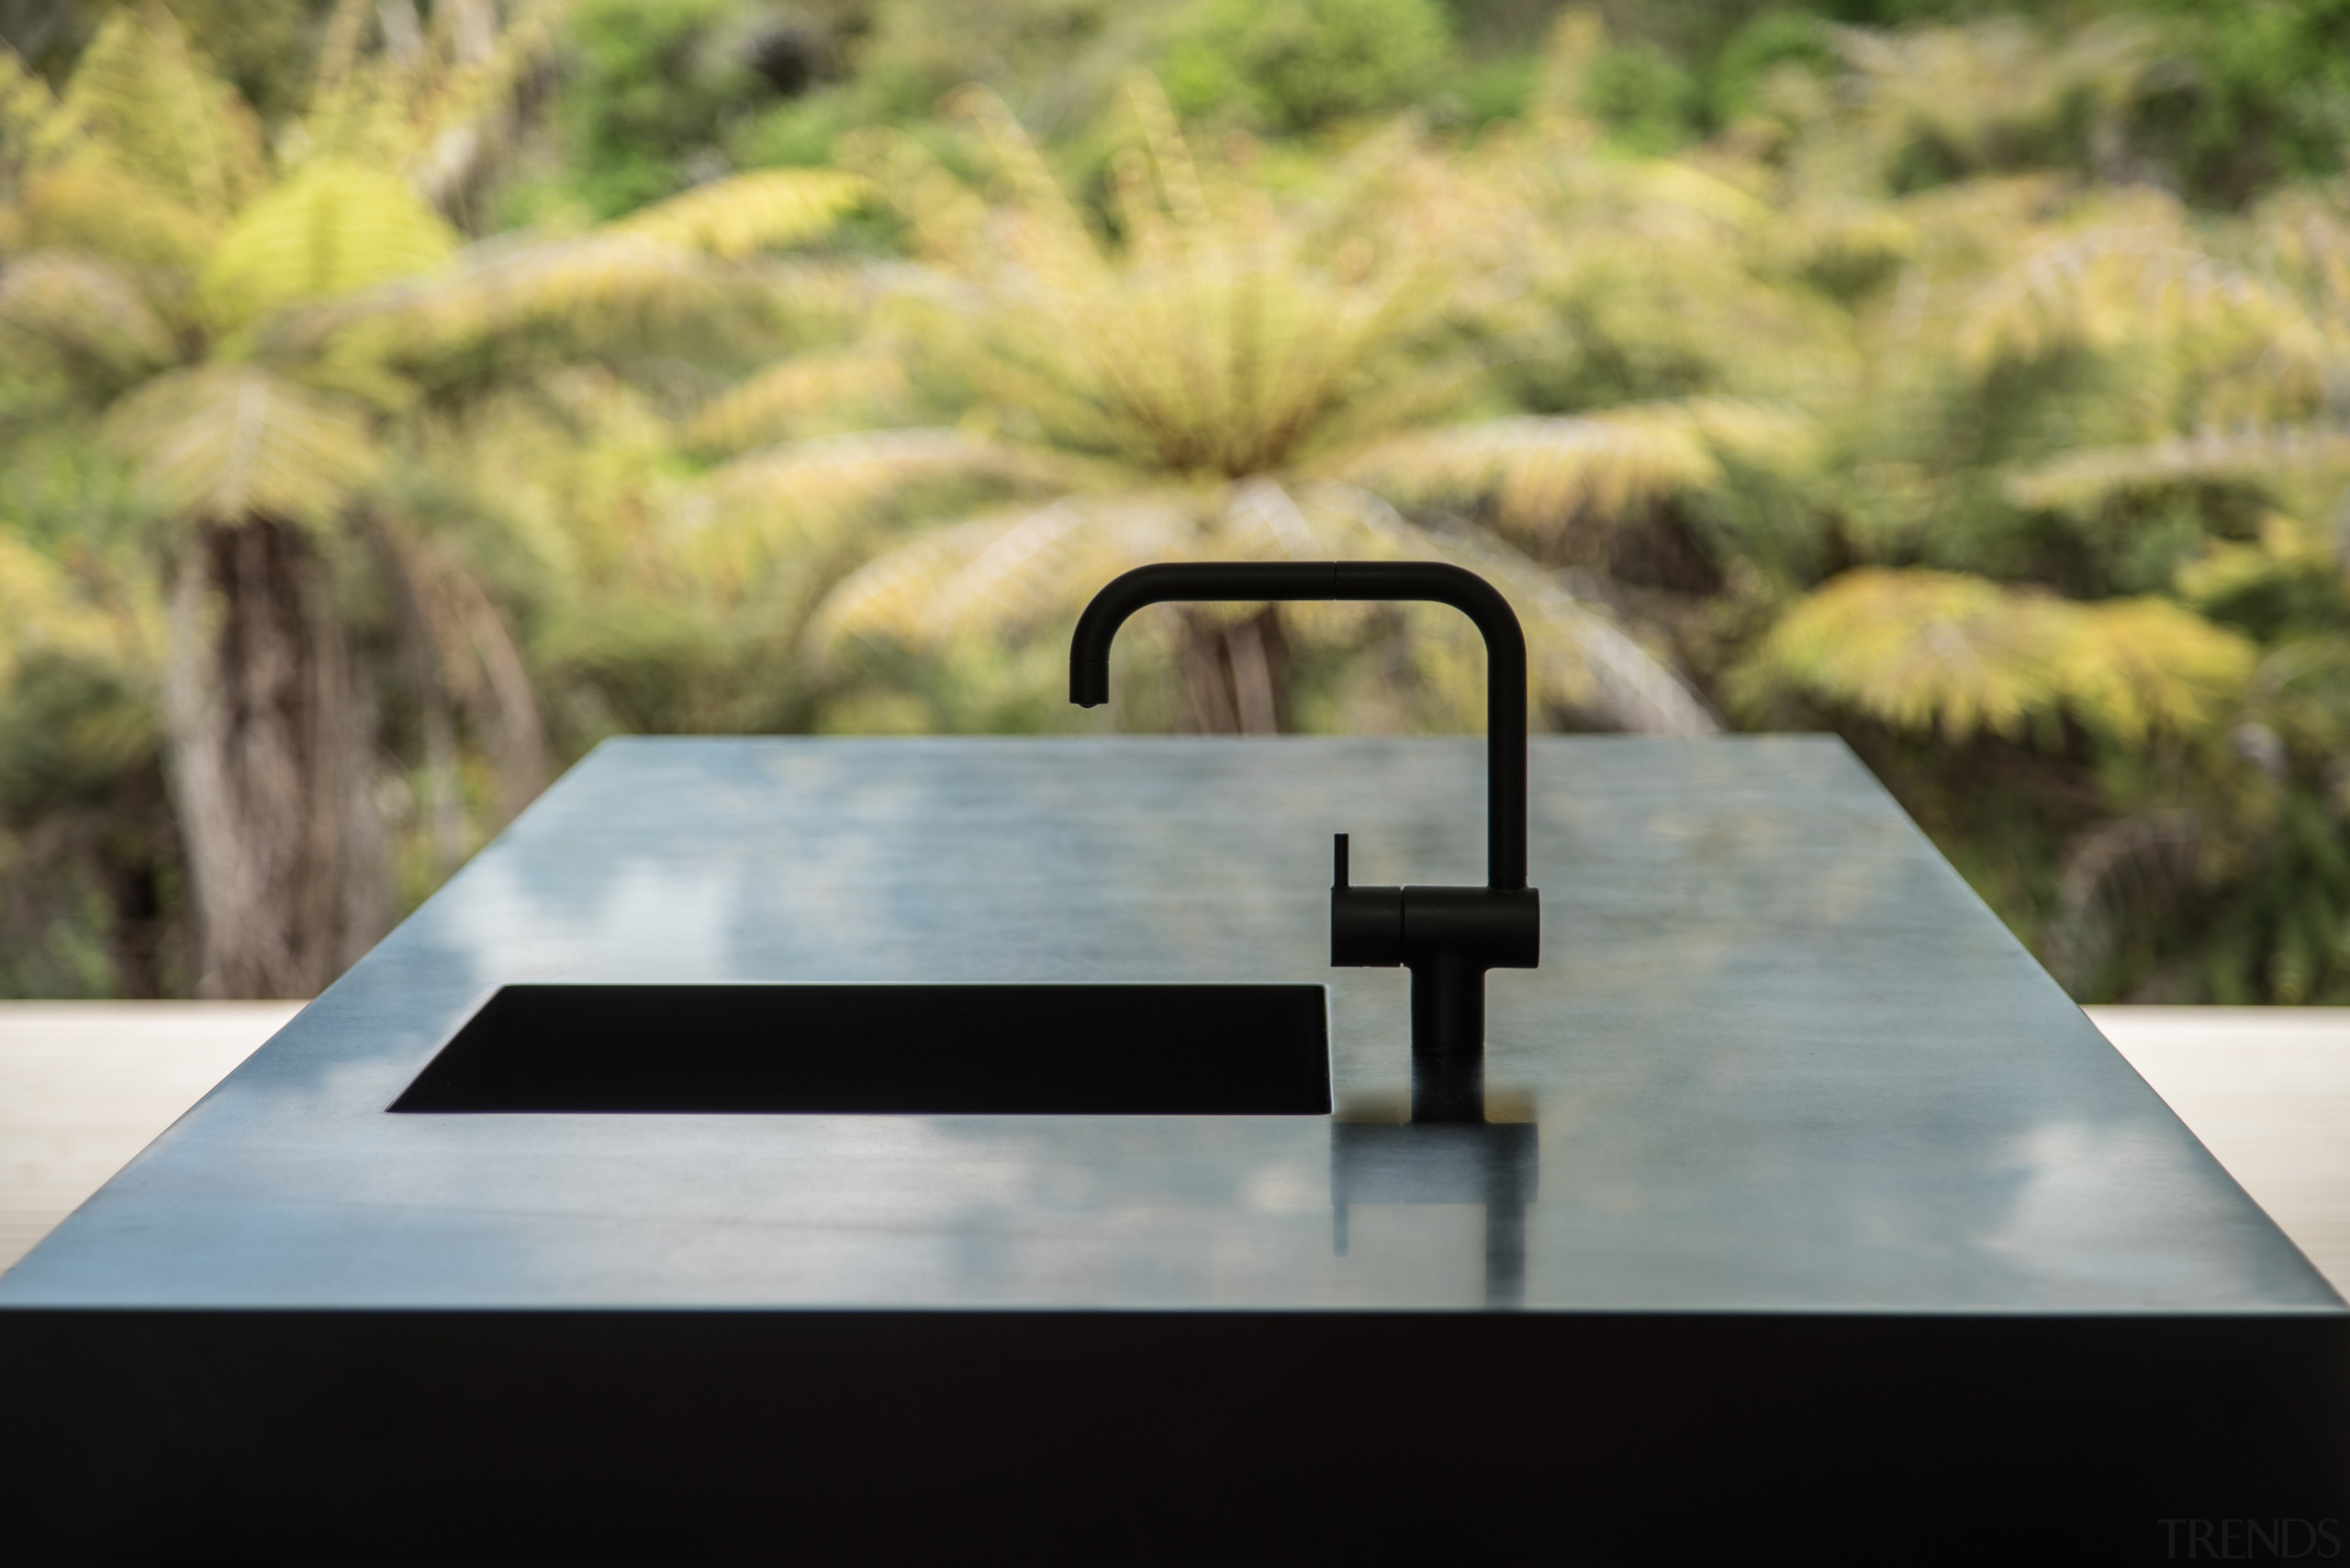 Despite being part of a modest-sized home, all automotive exterior, table, water